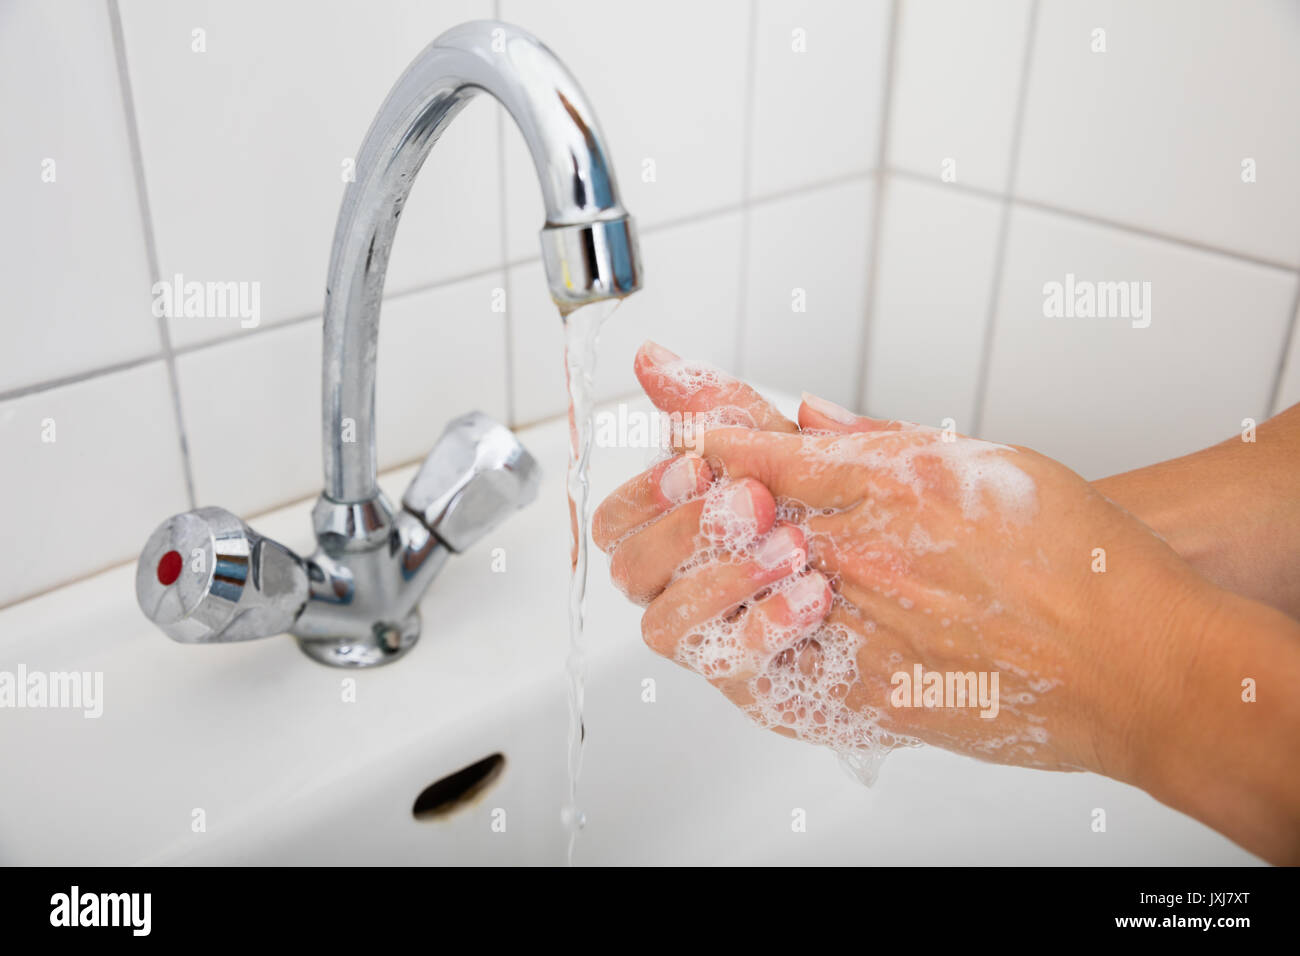 Close-up Of Woman Applying Soap While Washing Hands In Basin With Open Tap - Stock Image